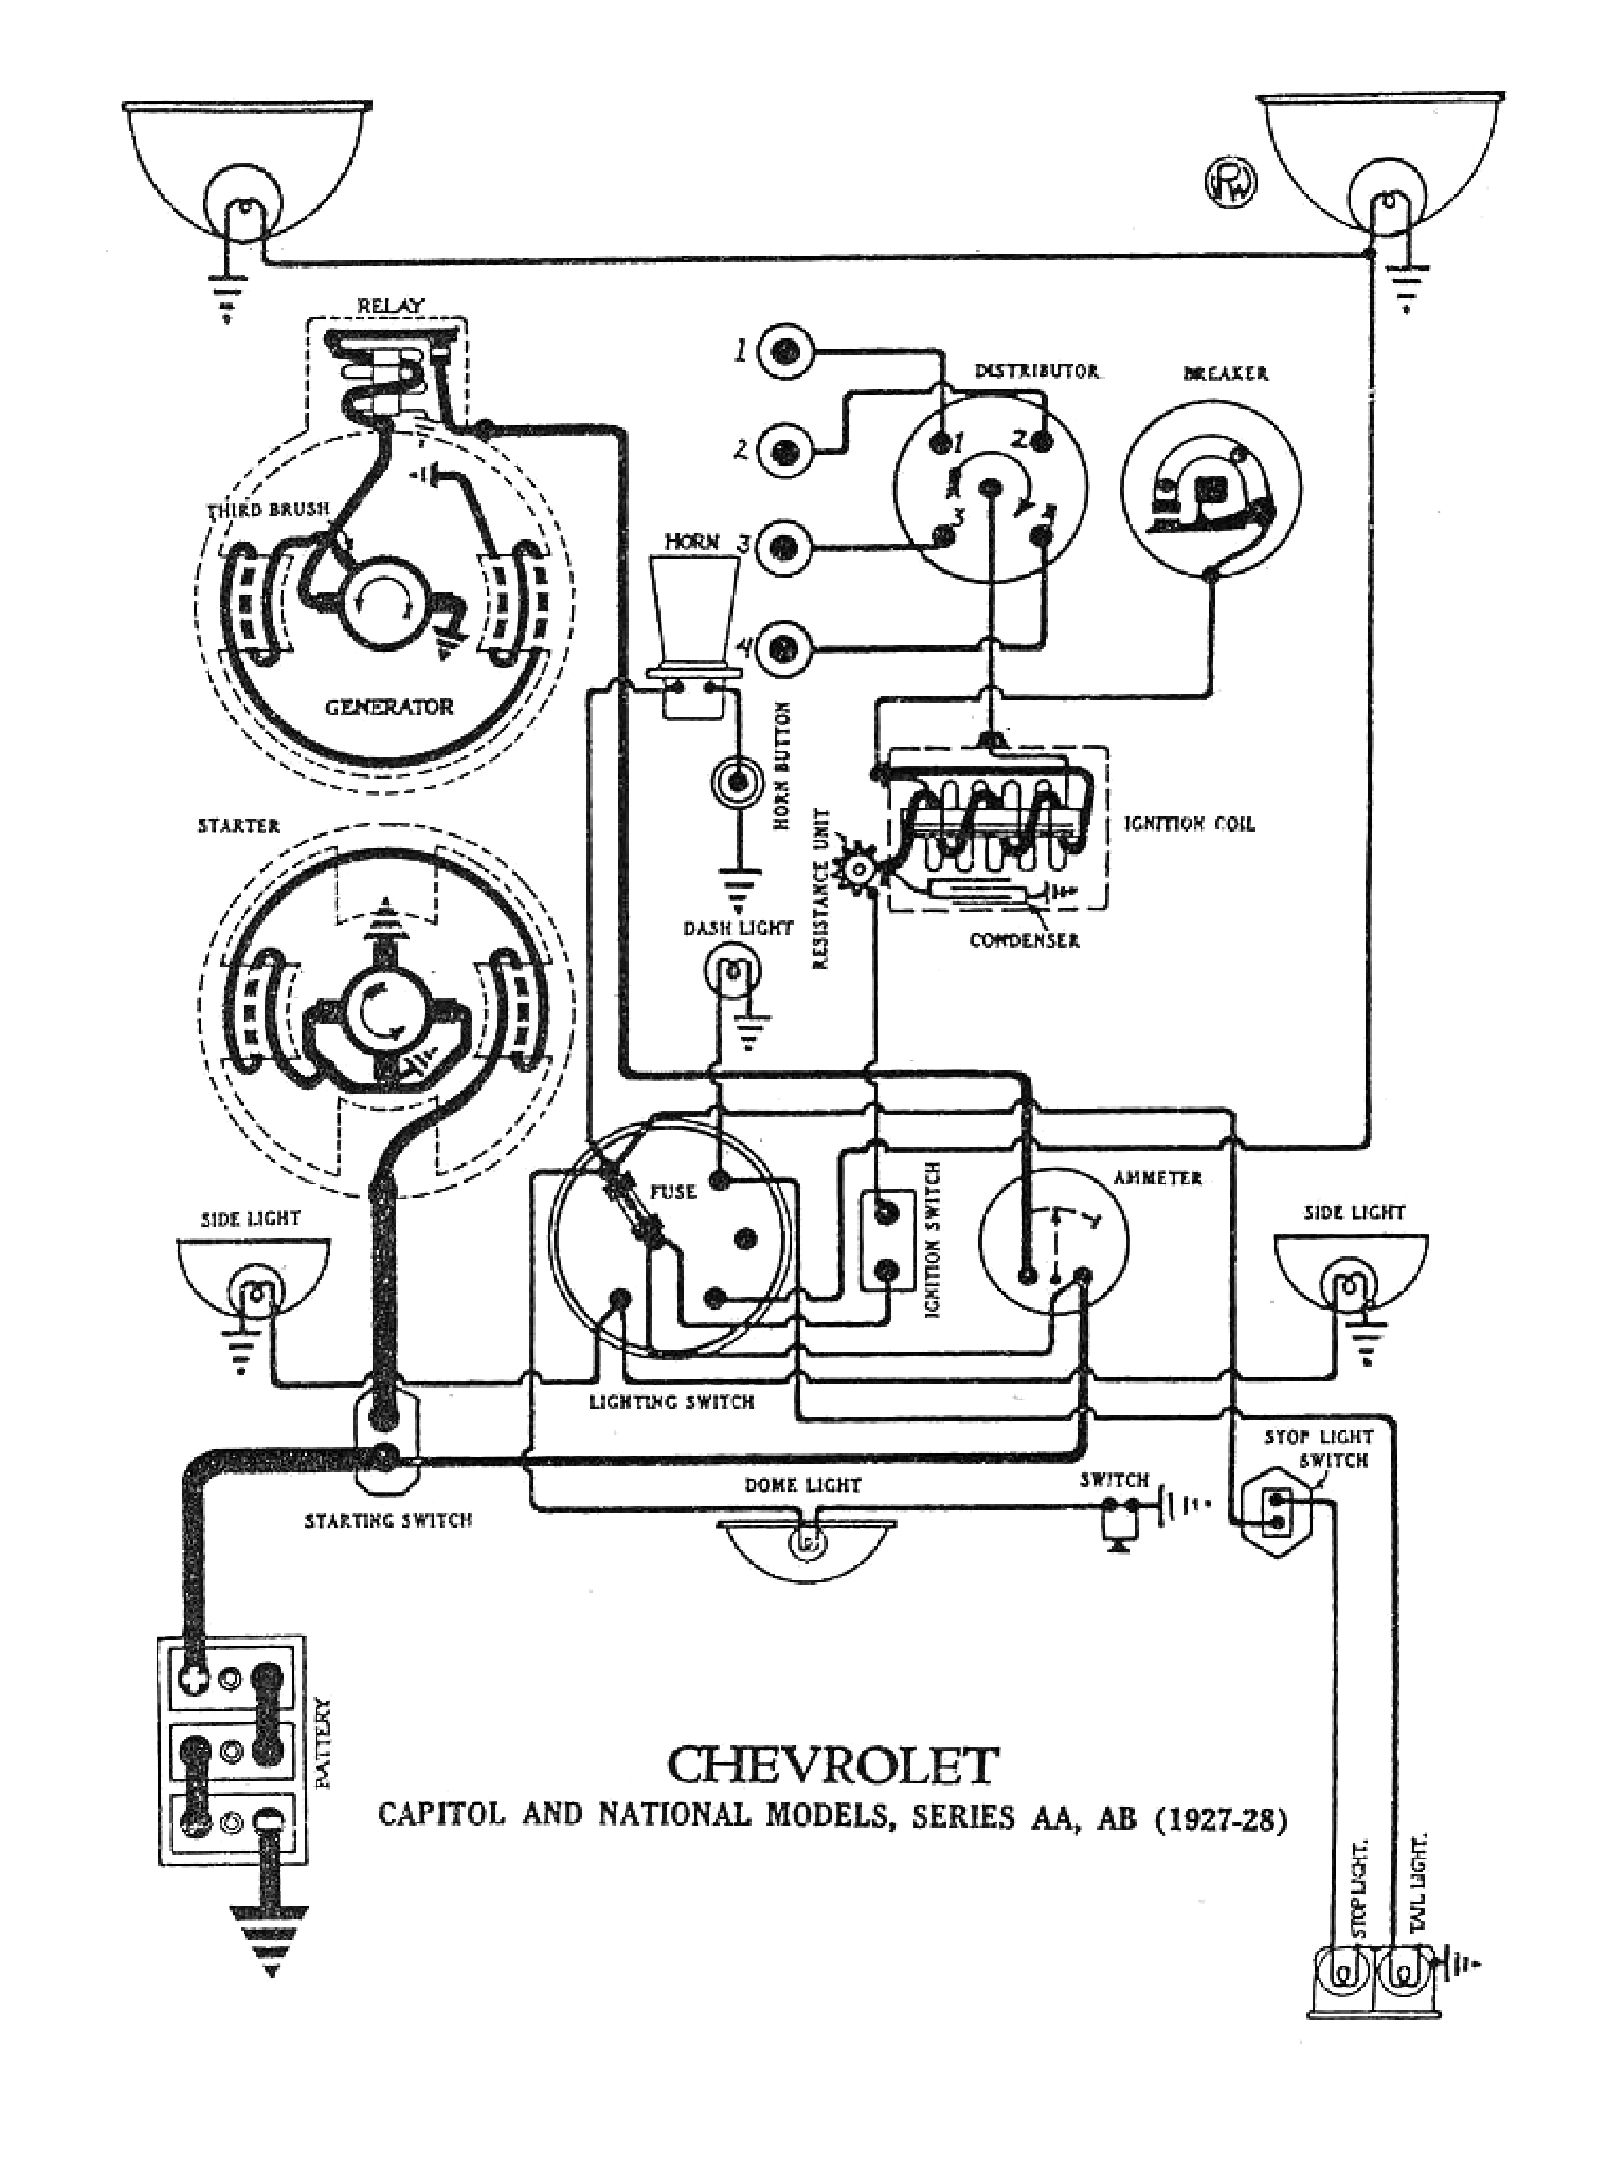 1972 corvette ignition wiring diagram 1972 f150 ignition wiring diagram